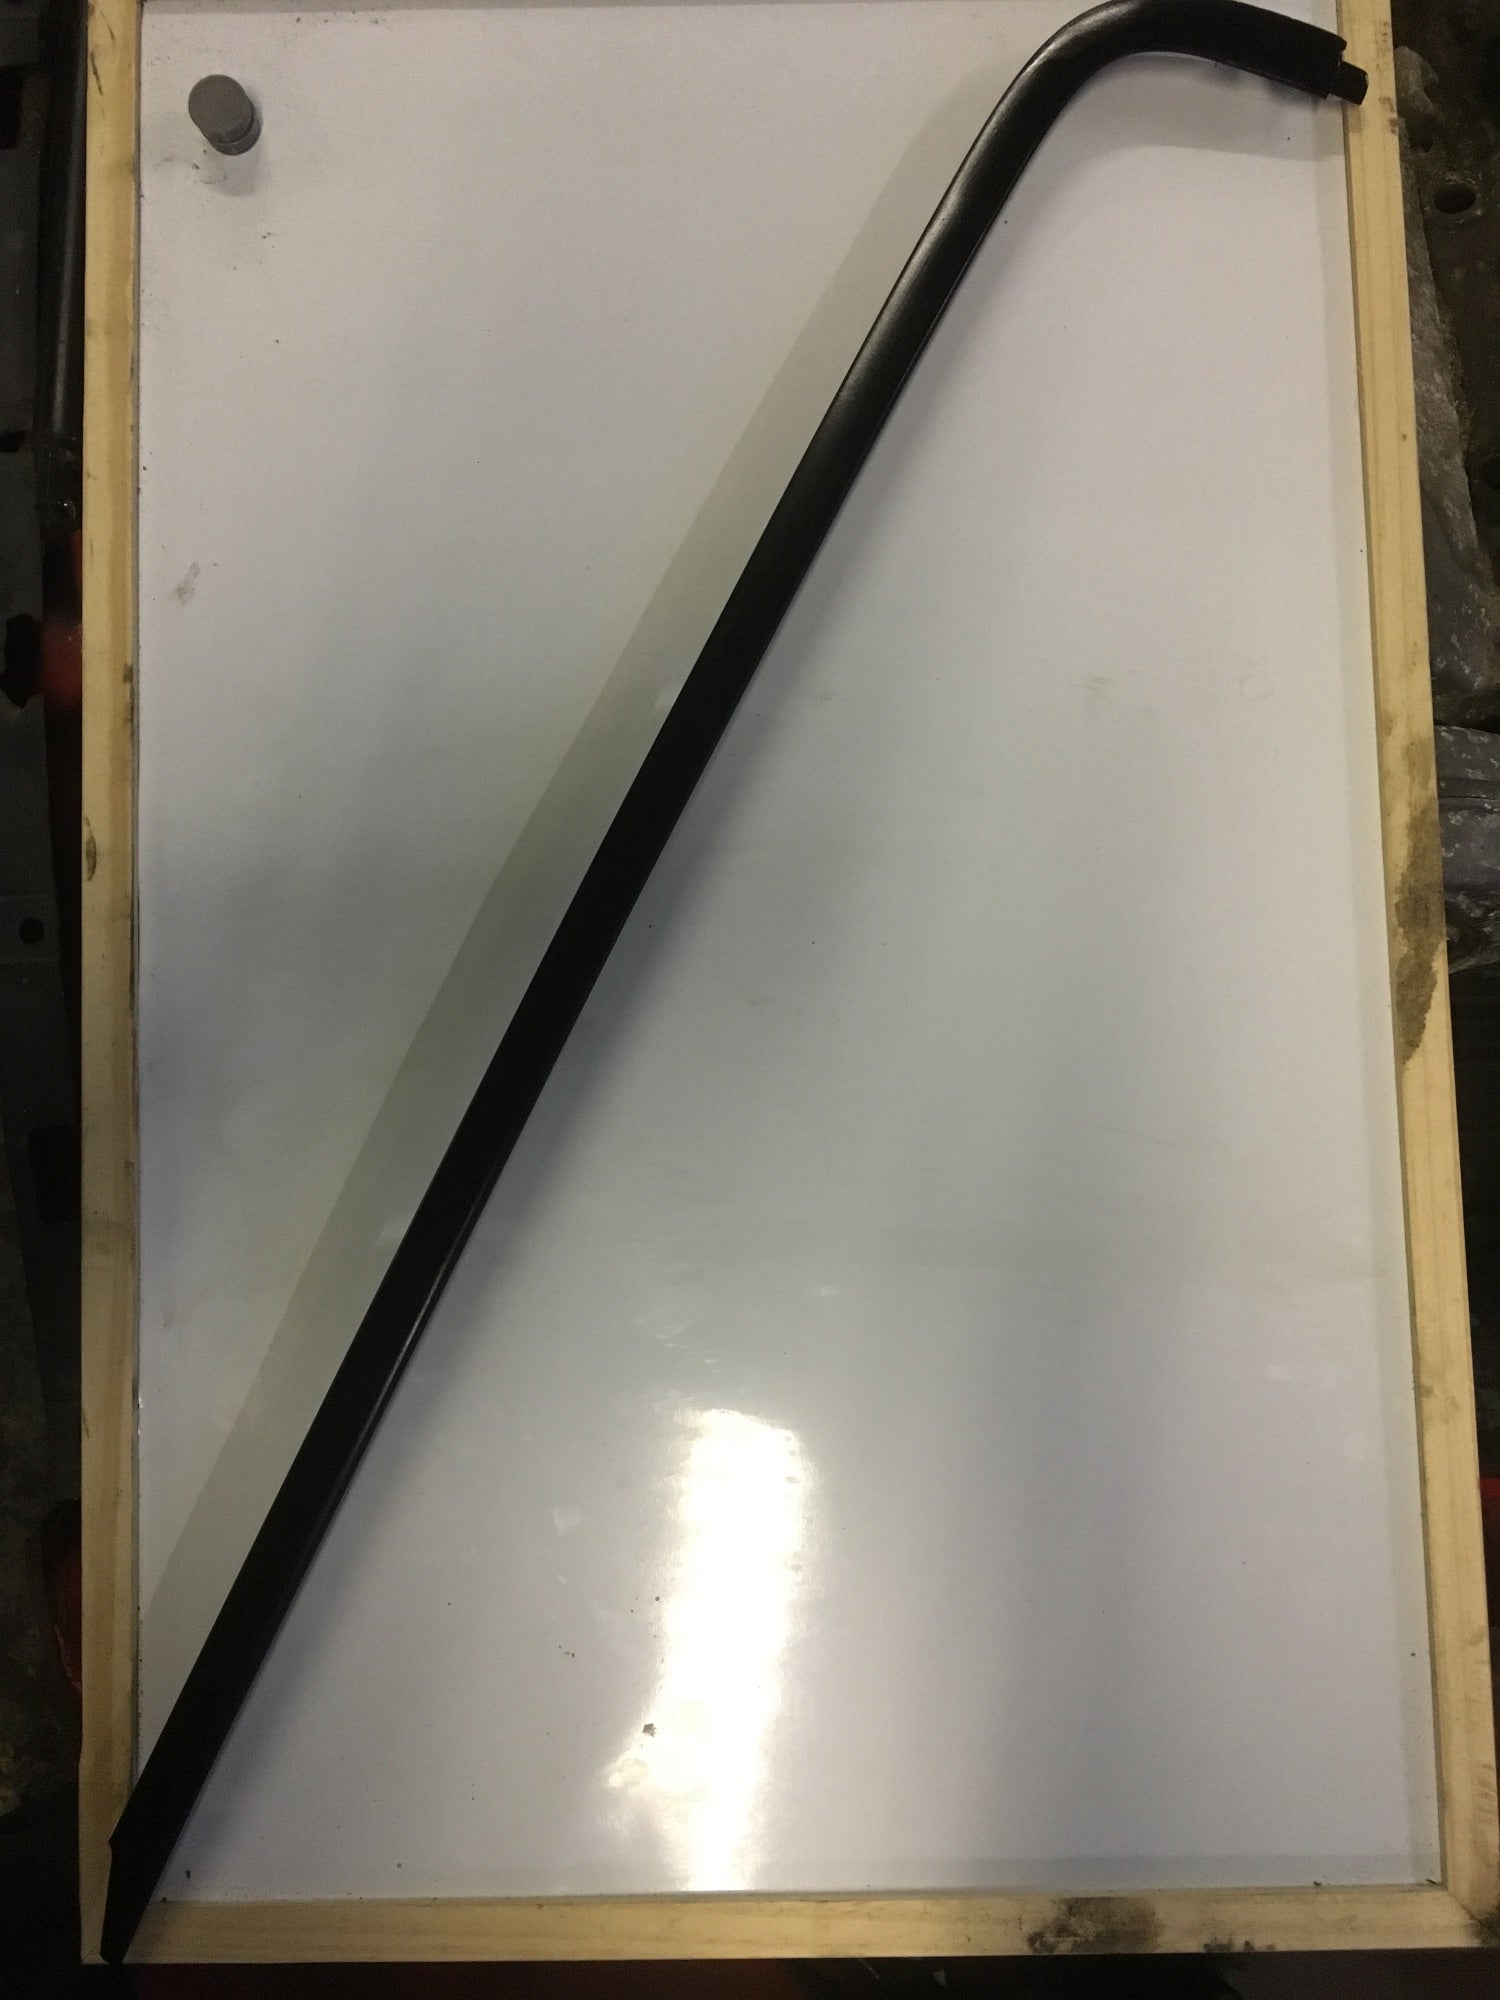 Porsche 924 944 1978-1986 windscreen trim (aluminium molding) right 477 853 020 - Woolies Workshop - Porsche 924 944 spares